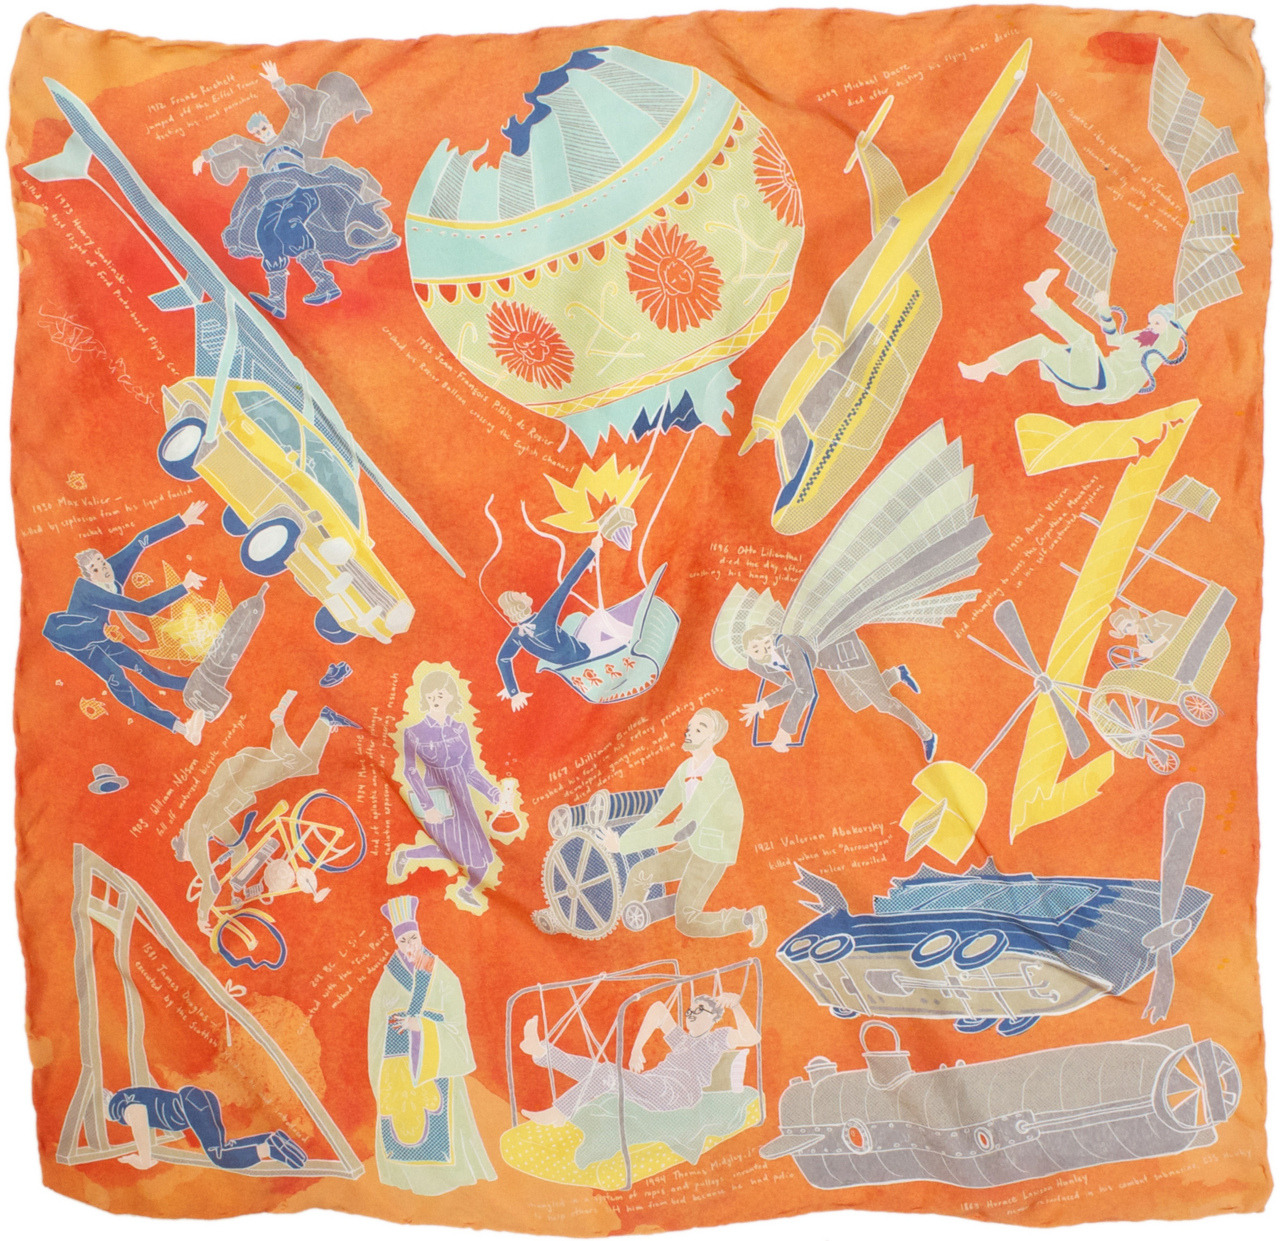 Inventors Killed by their Own Inventions-part of a series of Silk Scarves as infographics